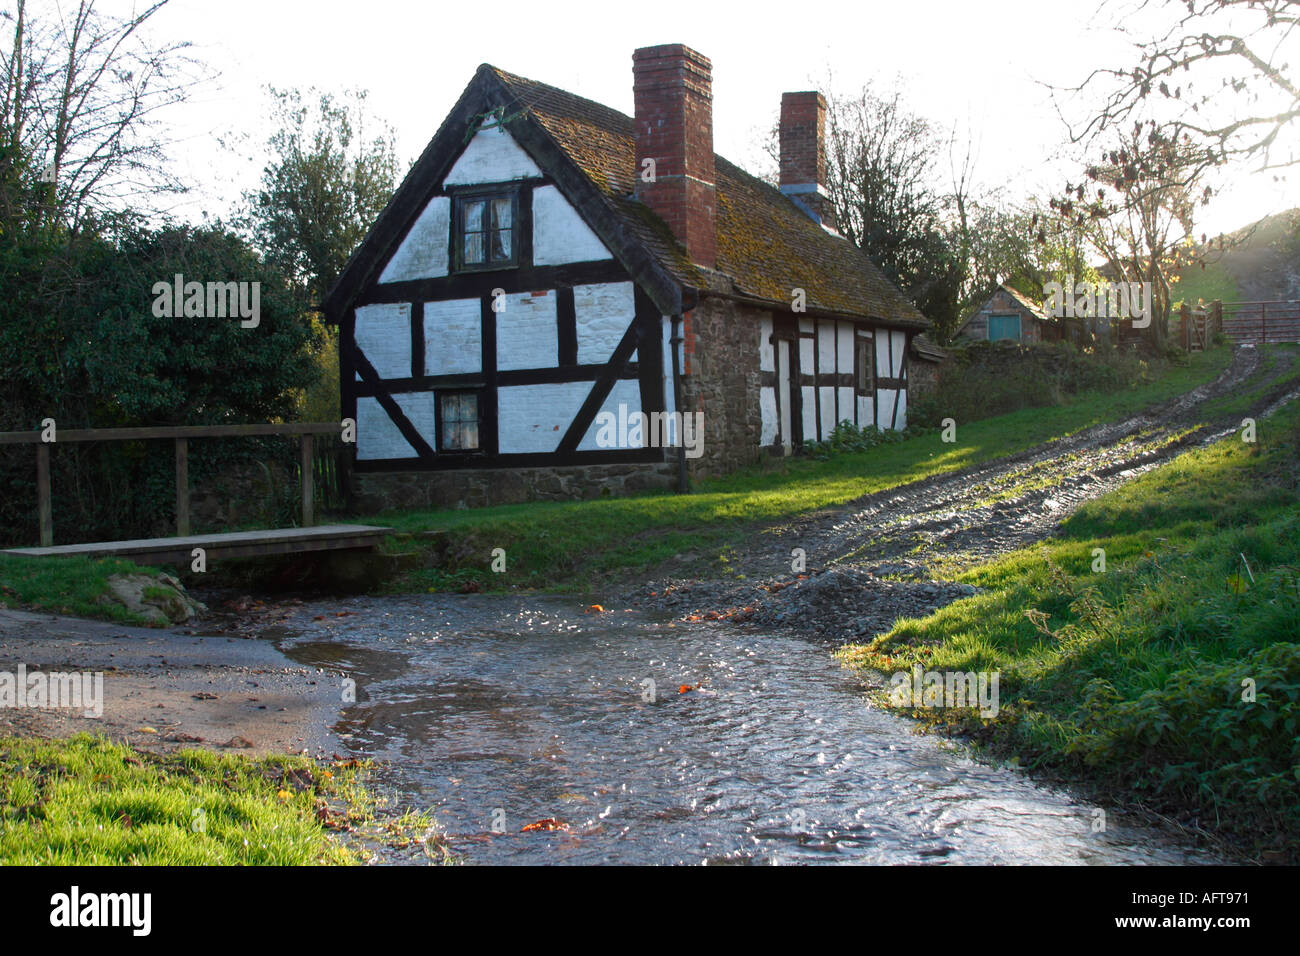 English Country Cottage Half Timbered House By Ford Stream